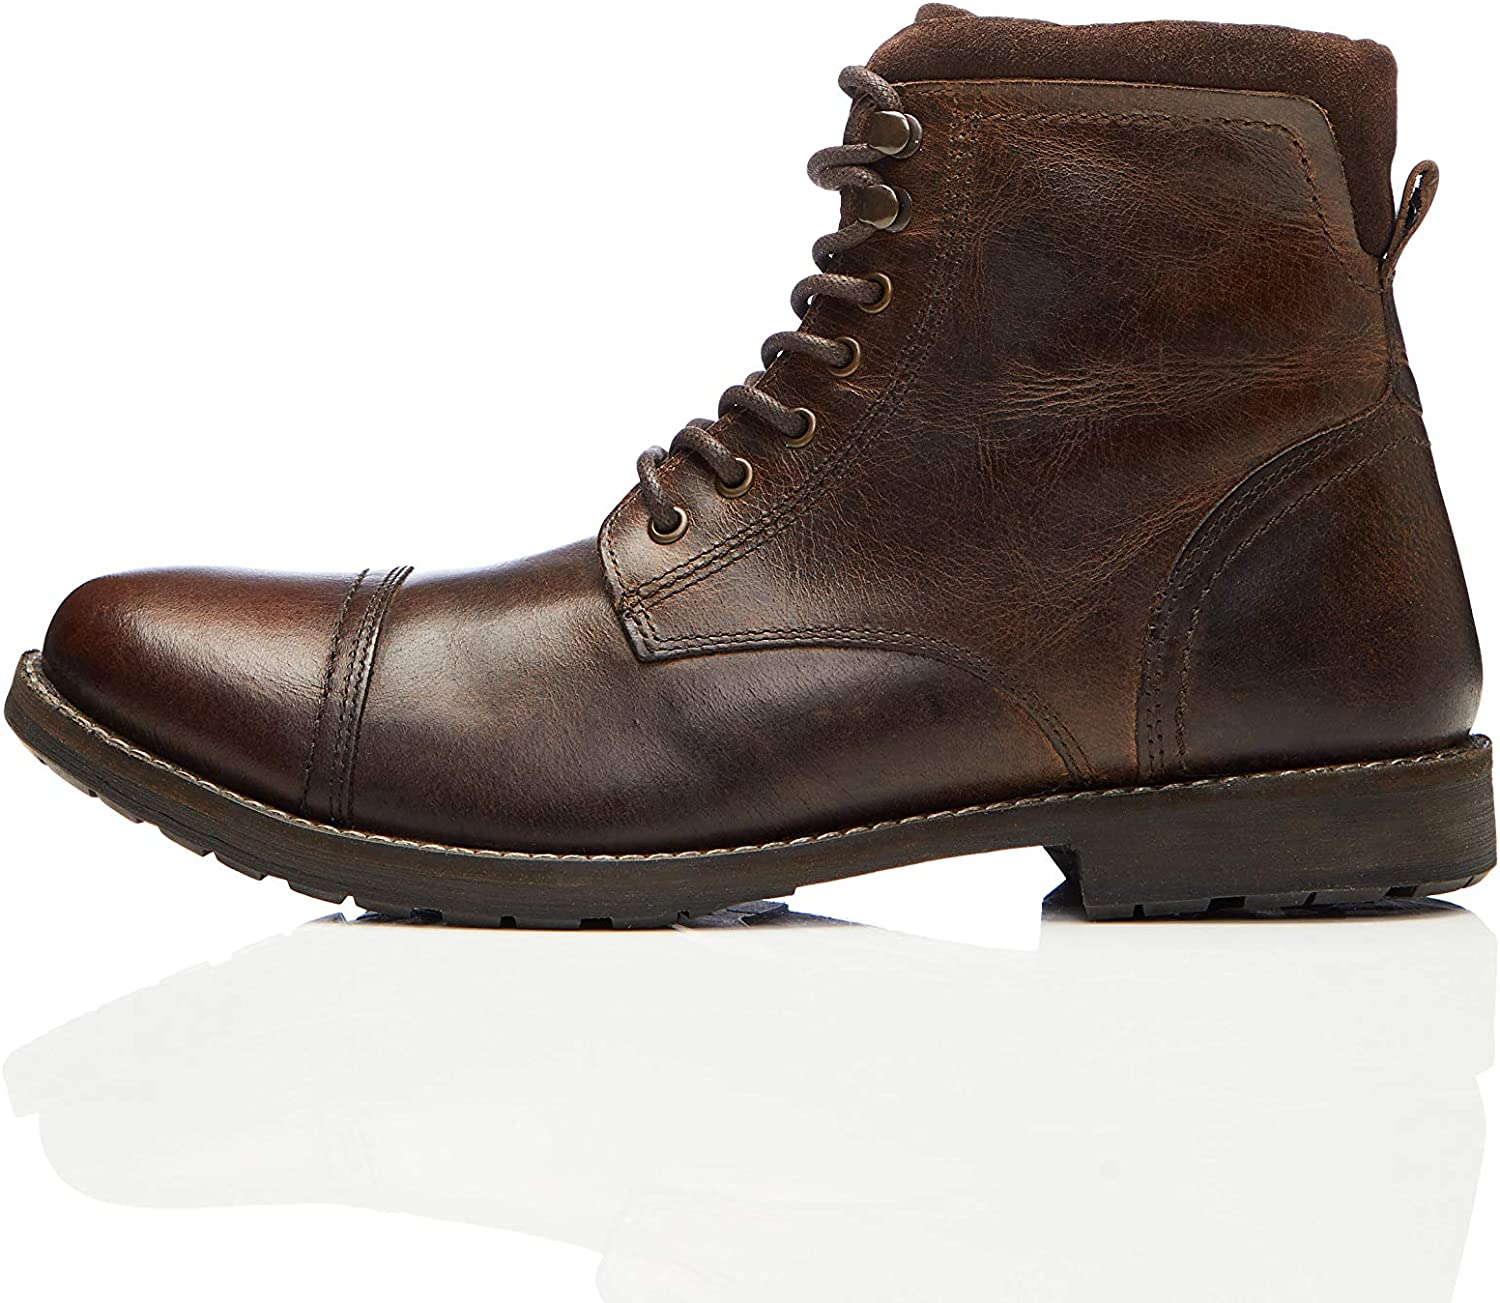 Marca Amazon - find. Hombre Botas de motorista